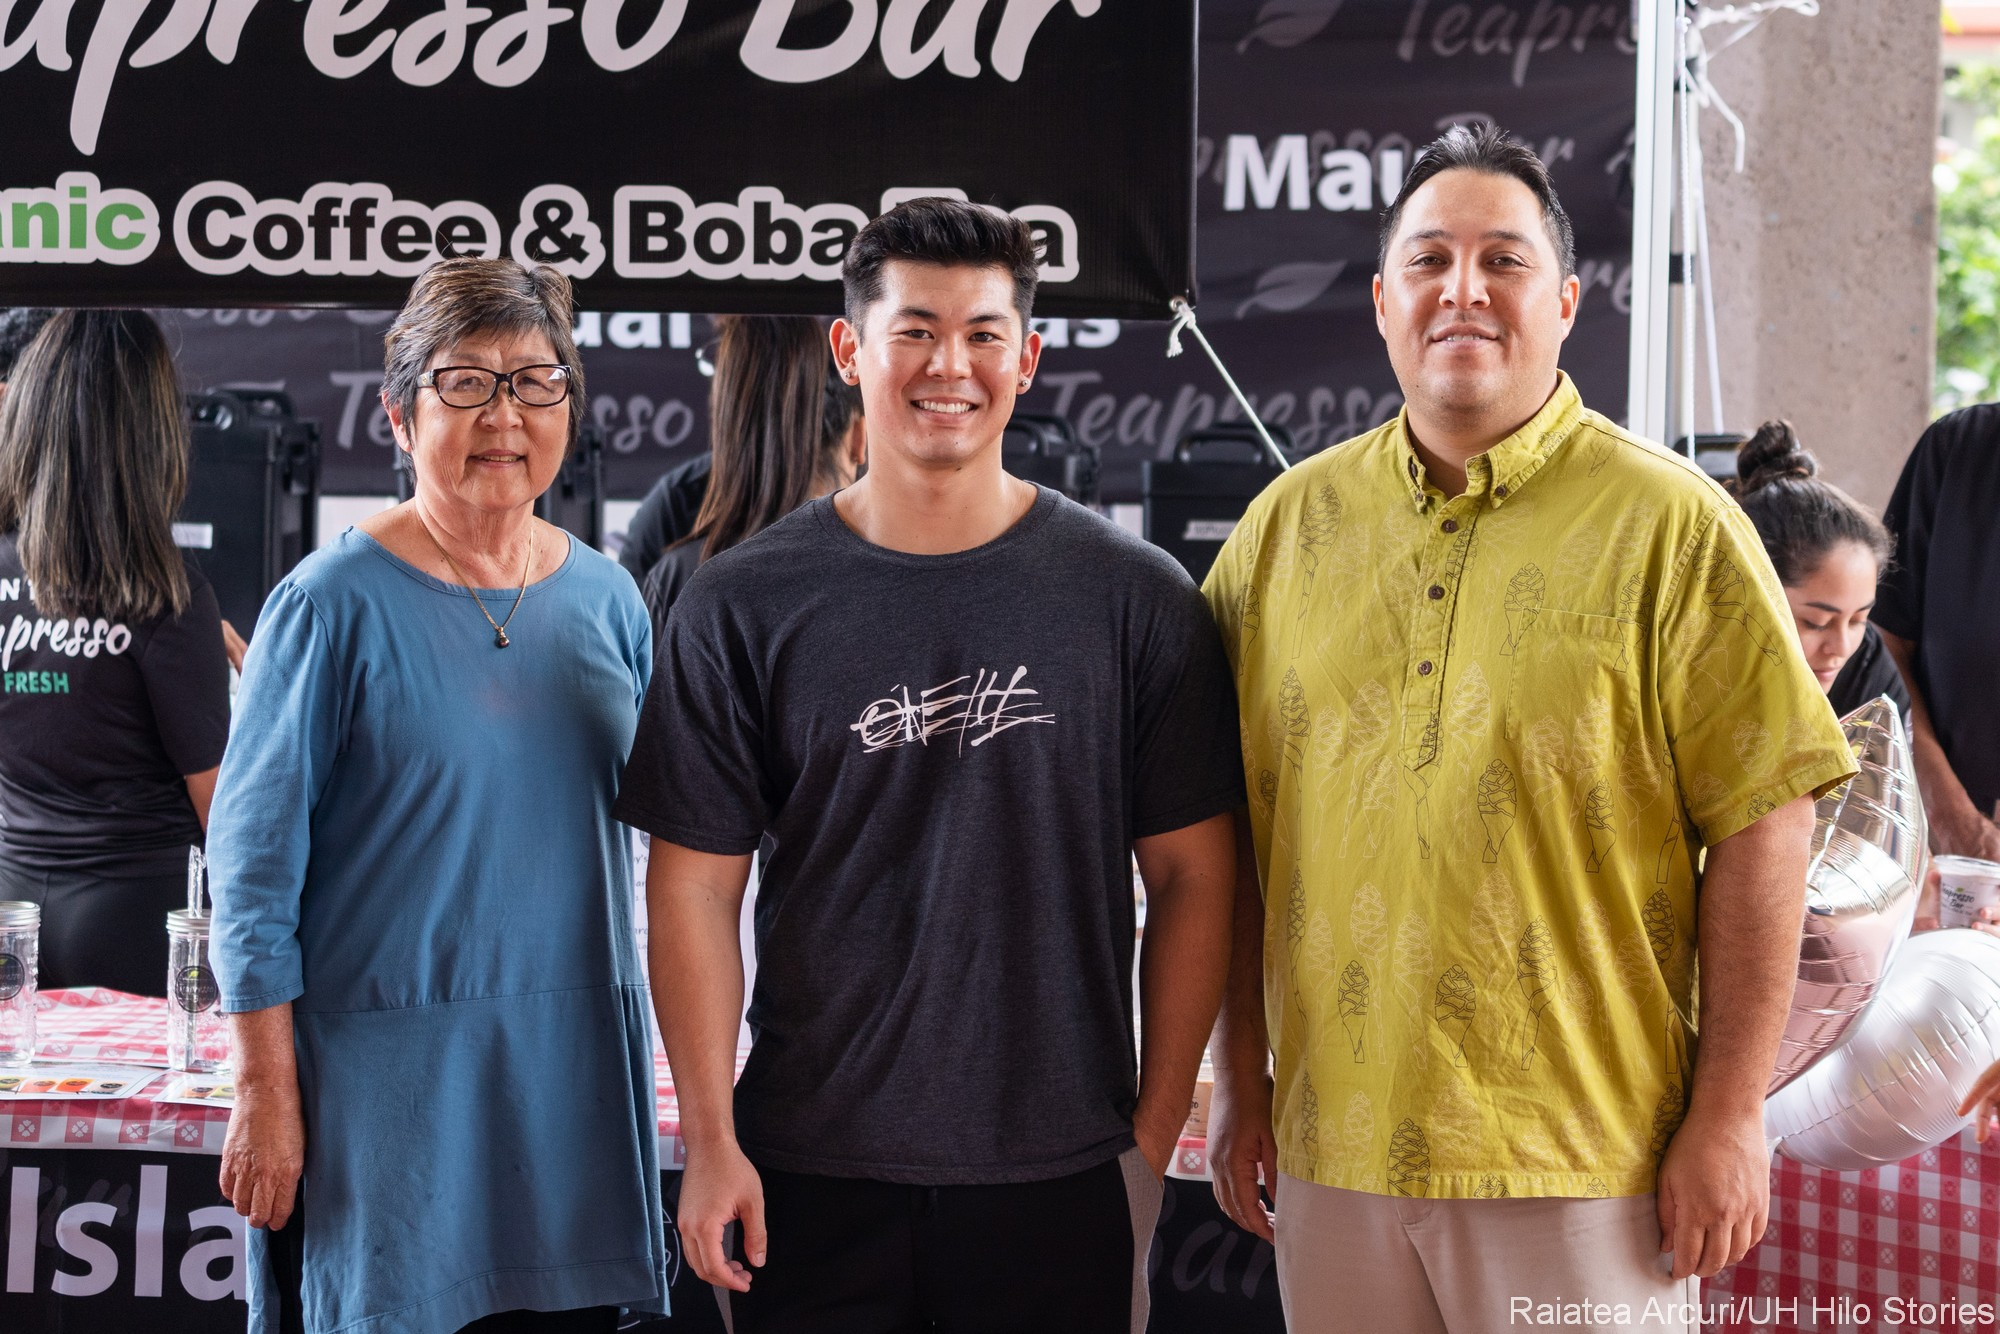 Marcia Sakai, Jordan Kamimura, and Kalei Rapoza standing in front of the Teapresso concession.